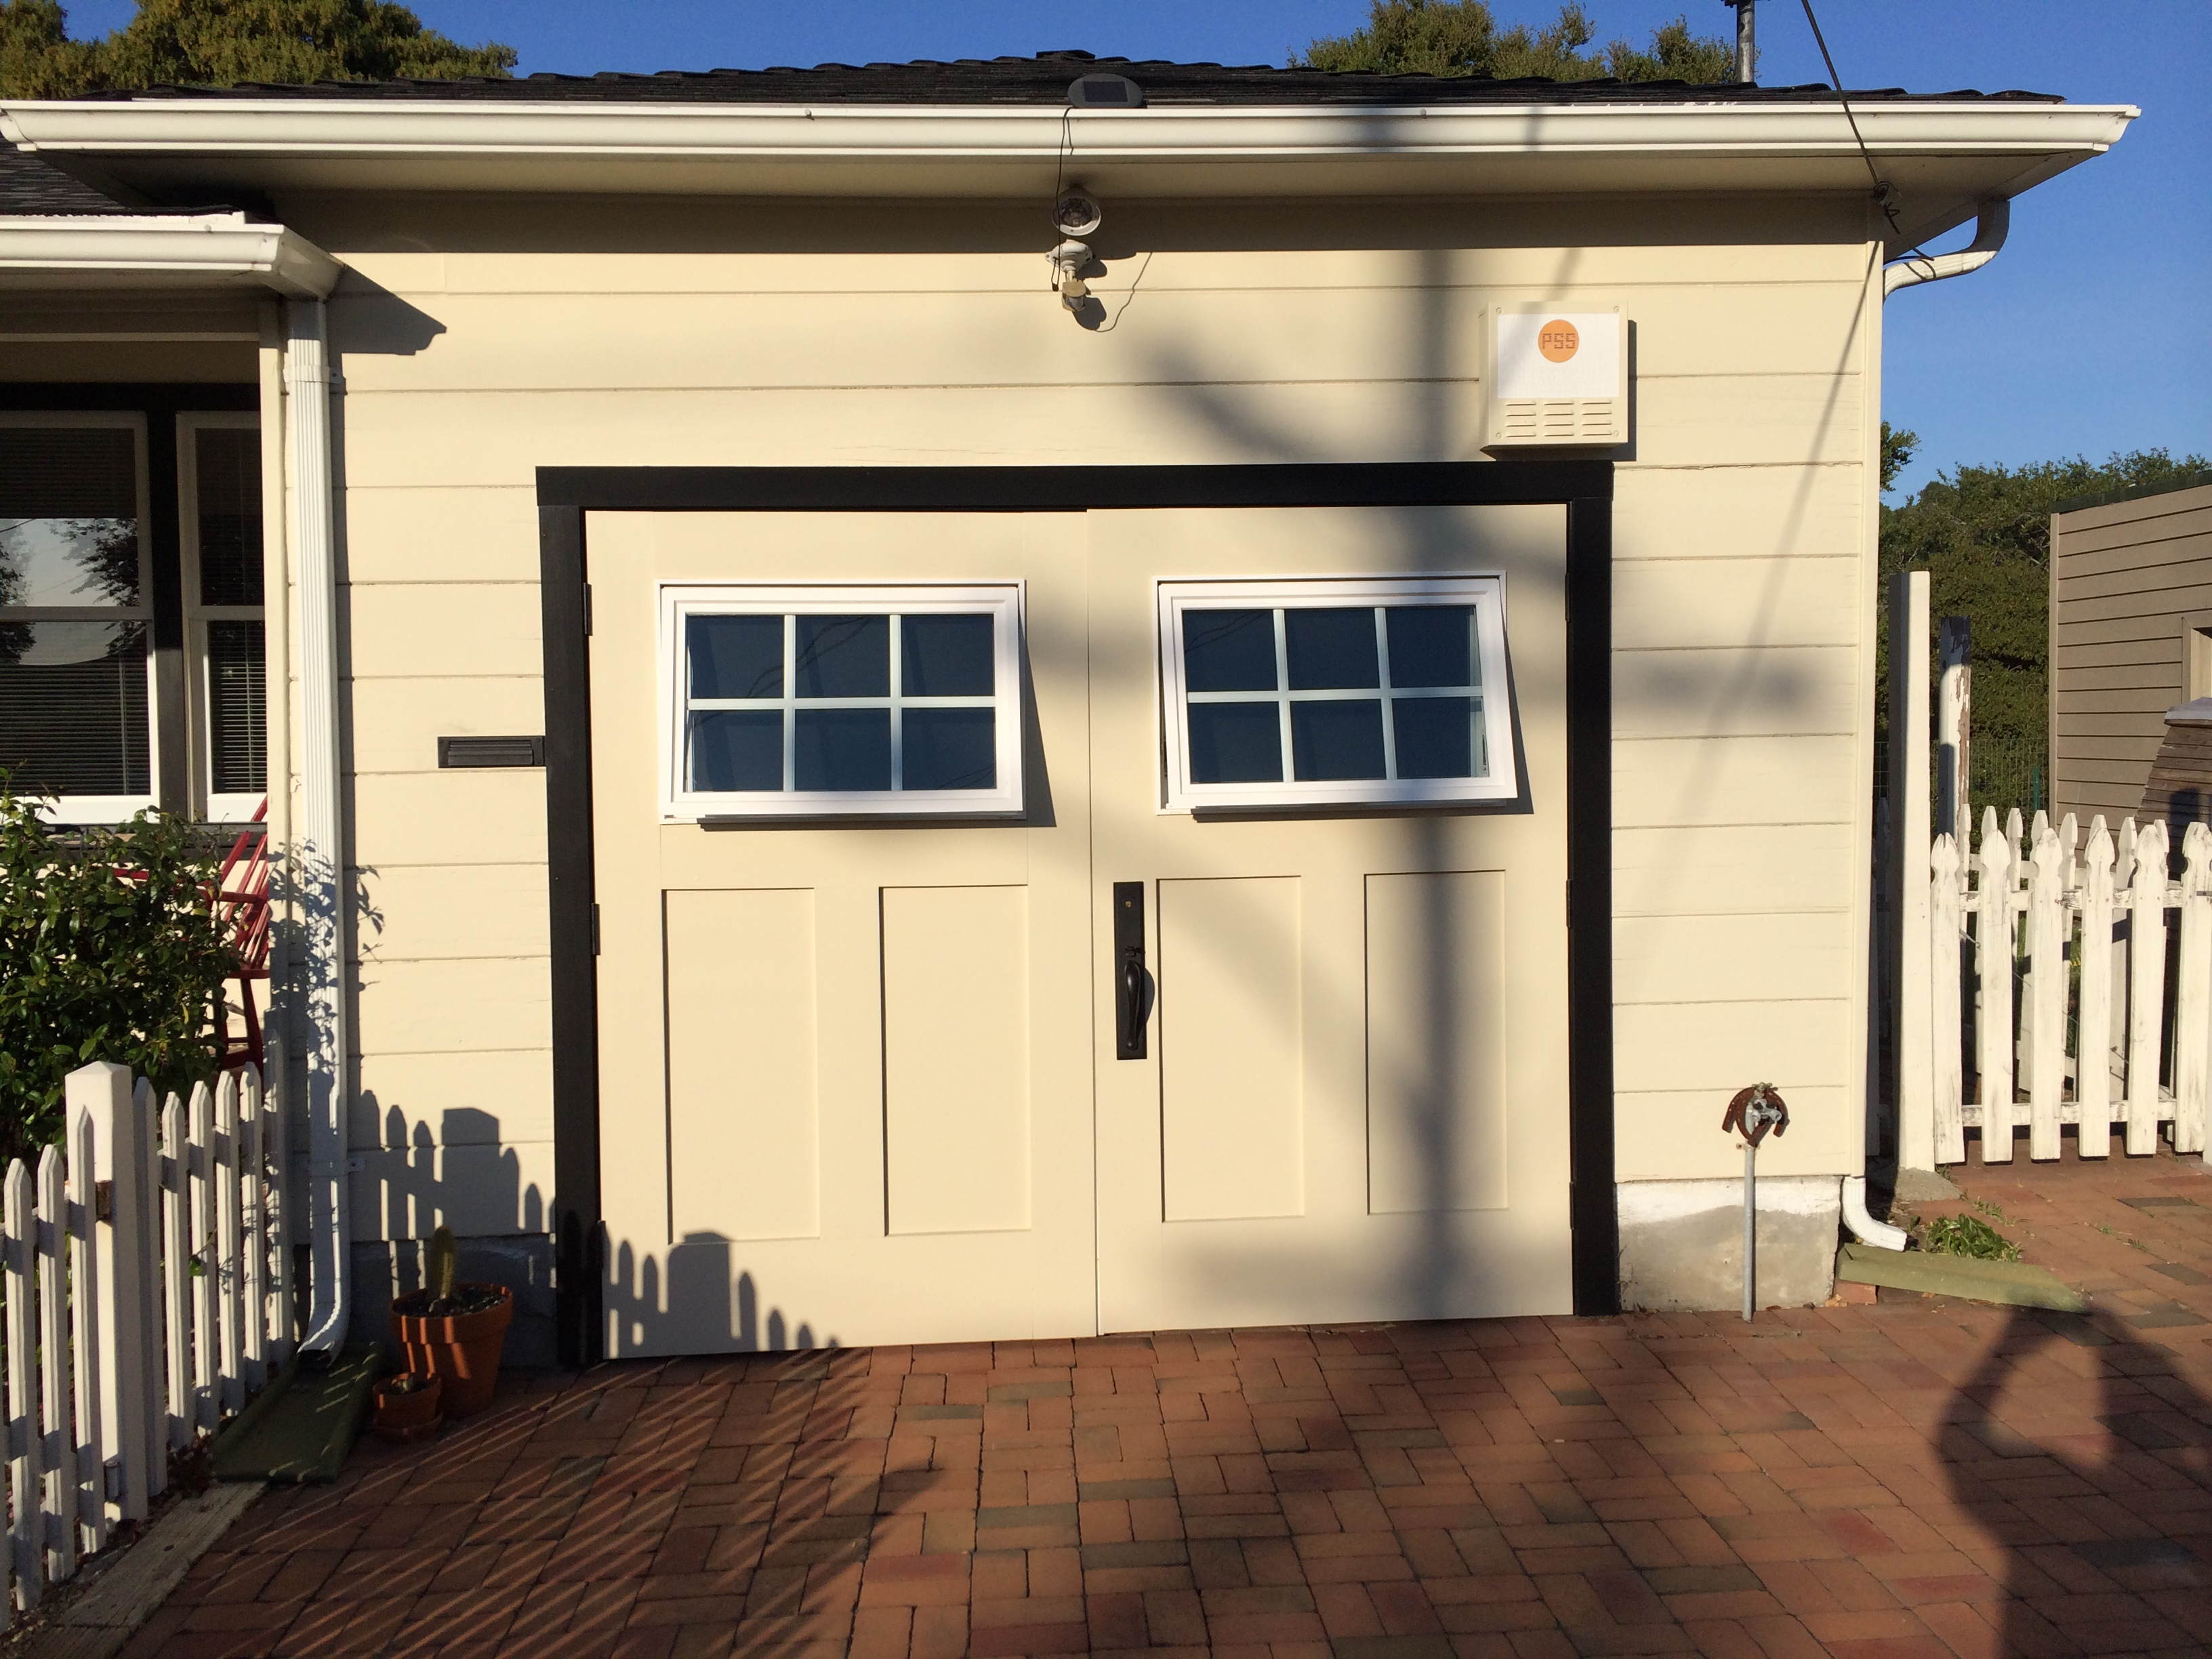 1000 images about Carriage Doors on Pinterest  Carriage doors Carriage house garage doors and